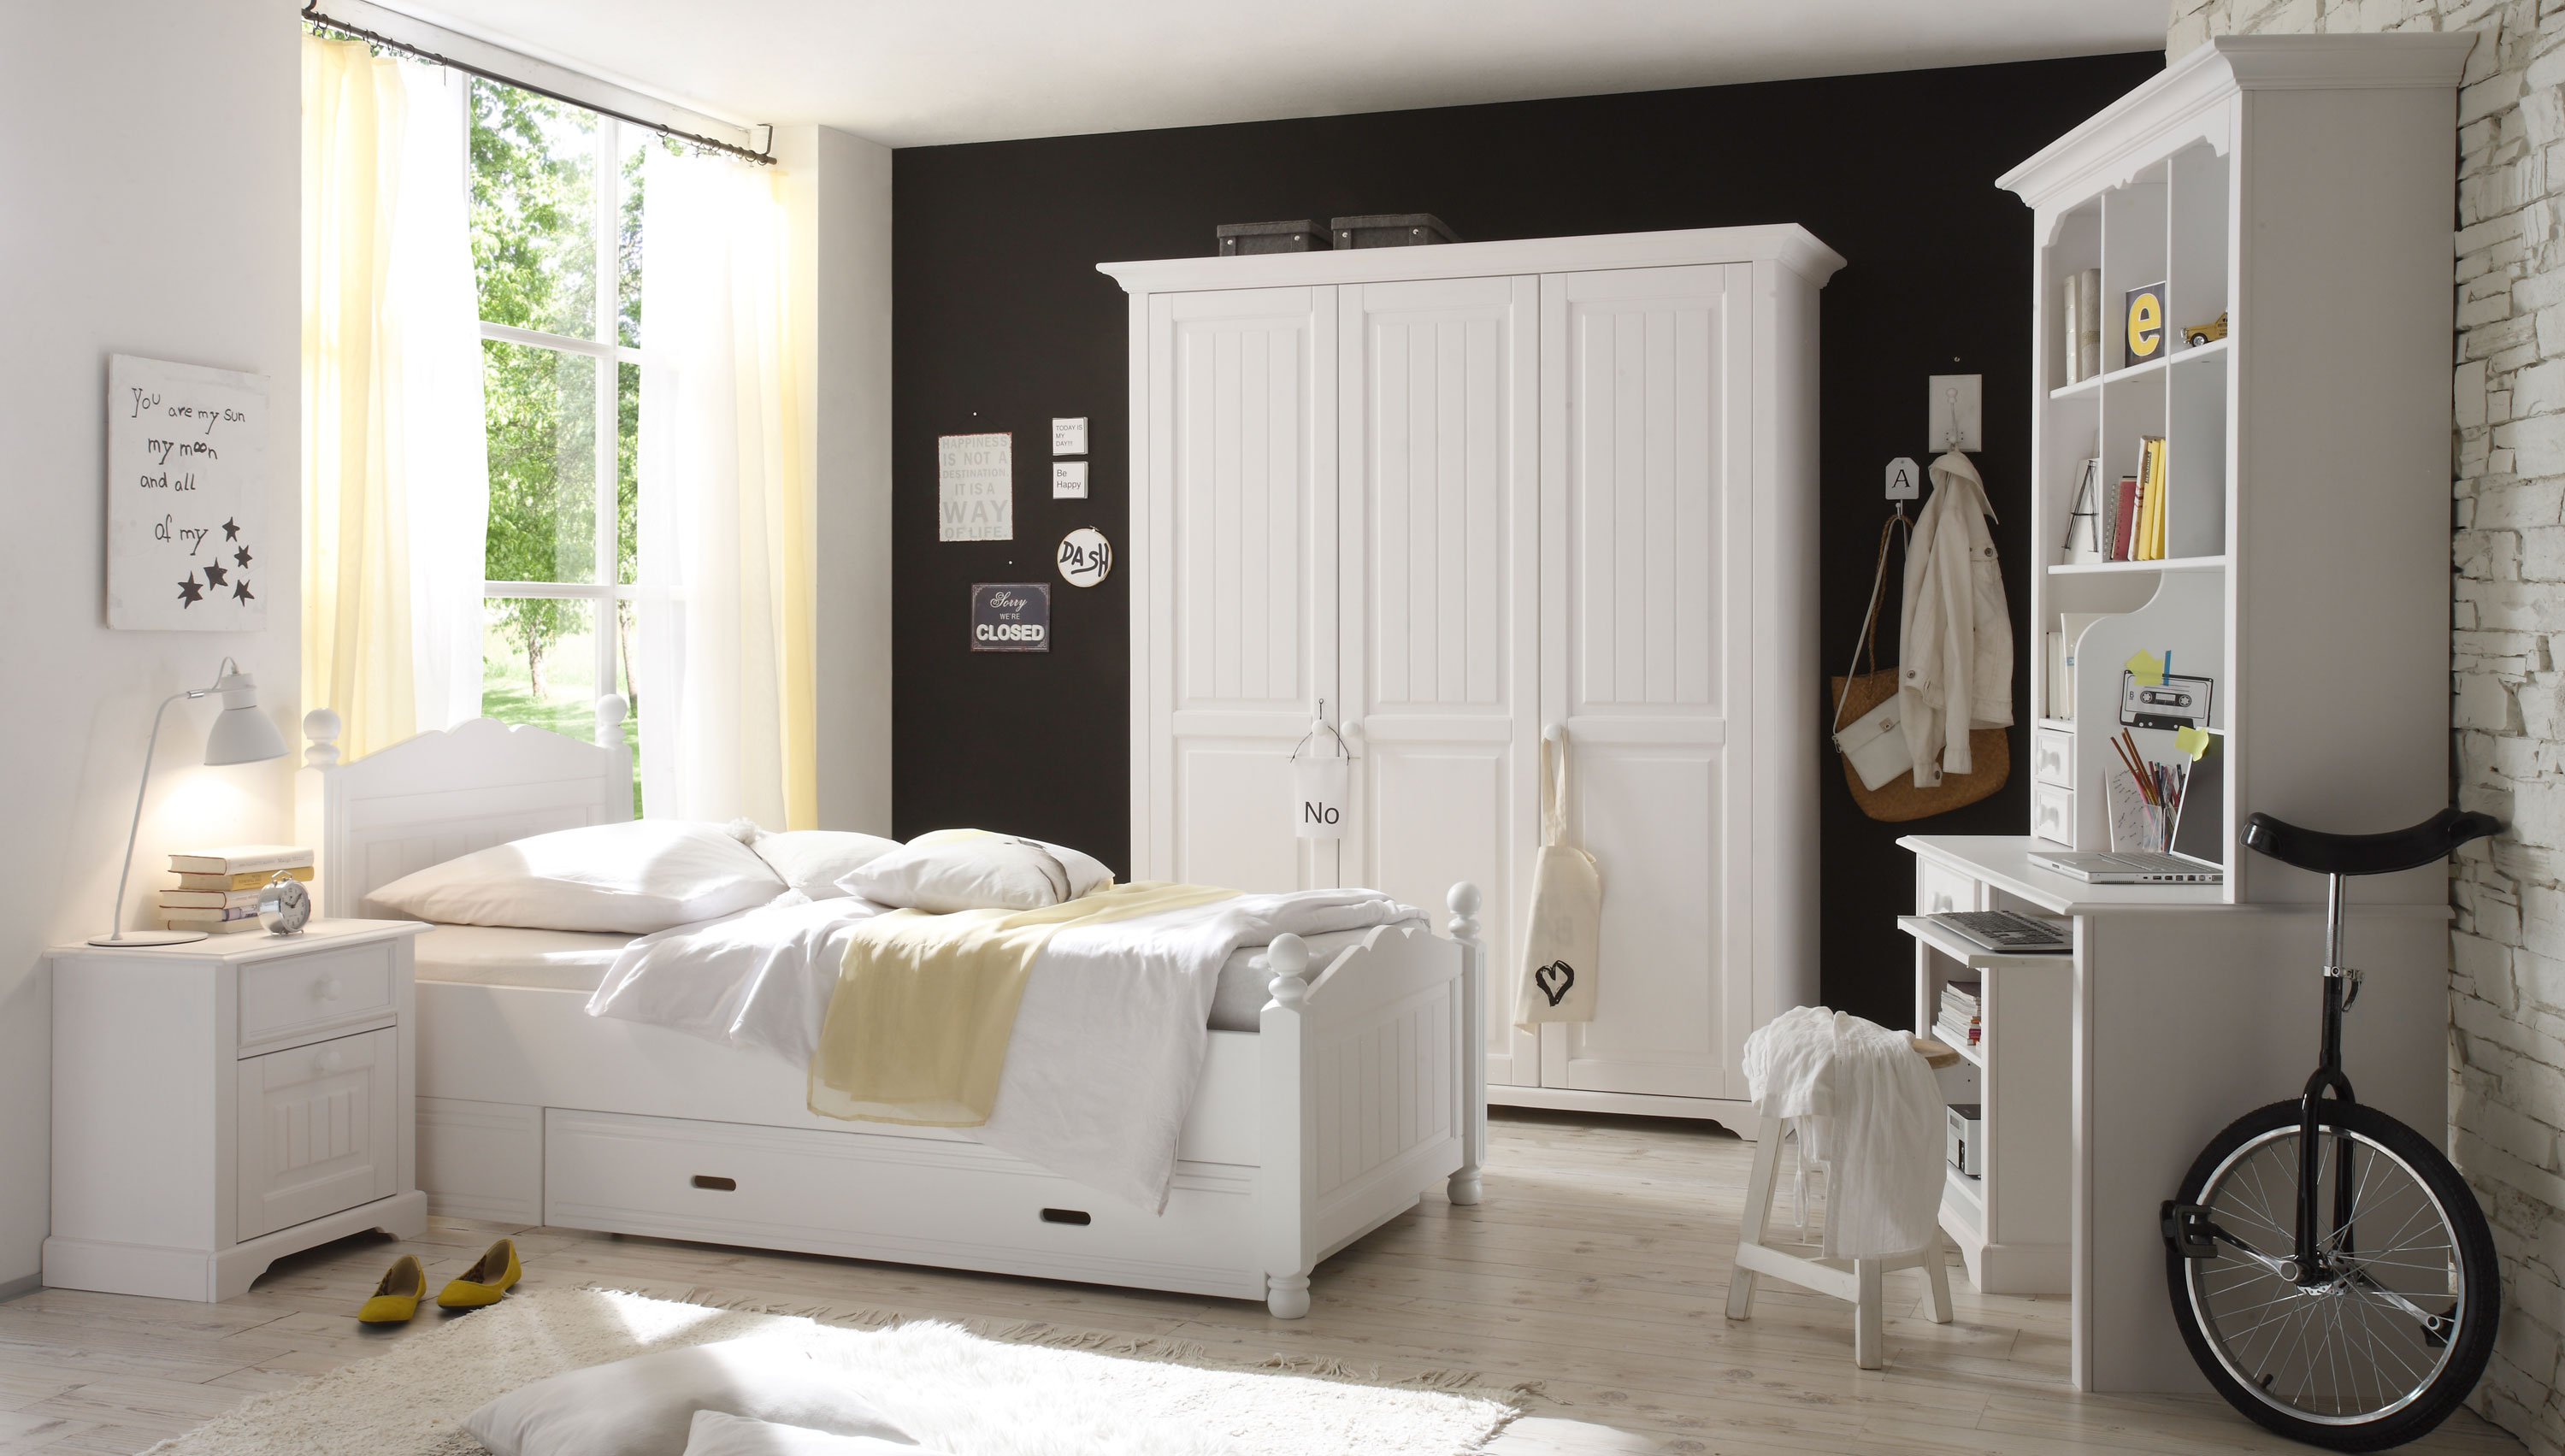 jugendzimmer design m dchen wei. Black Bedroom Furniture Sets. Home Design Ideas